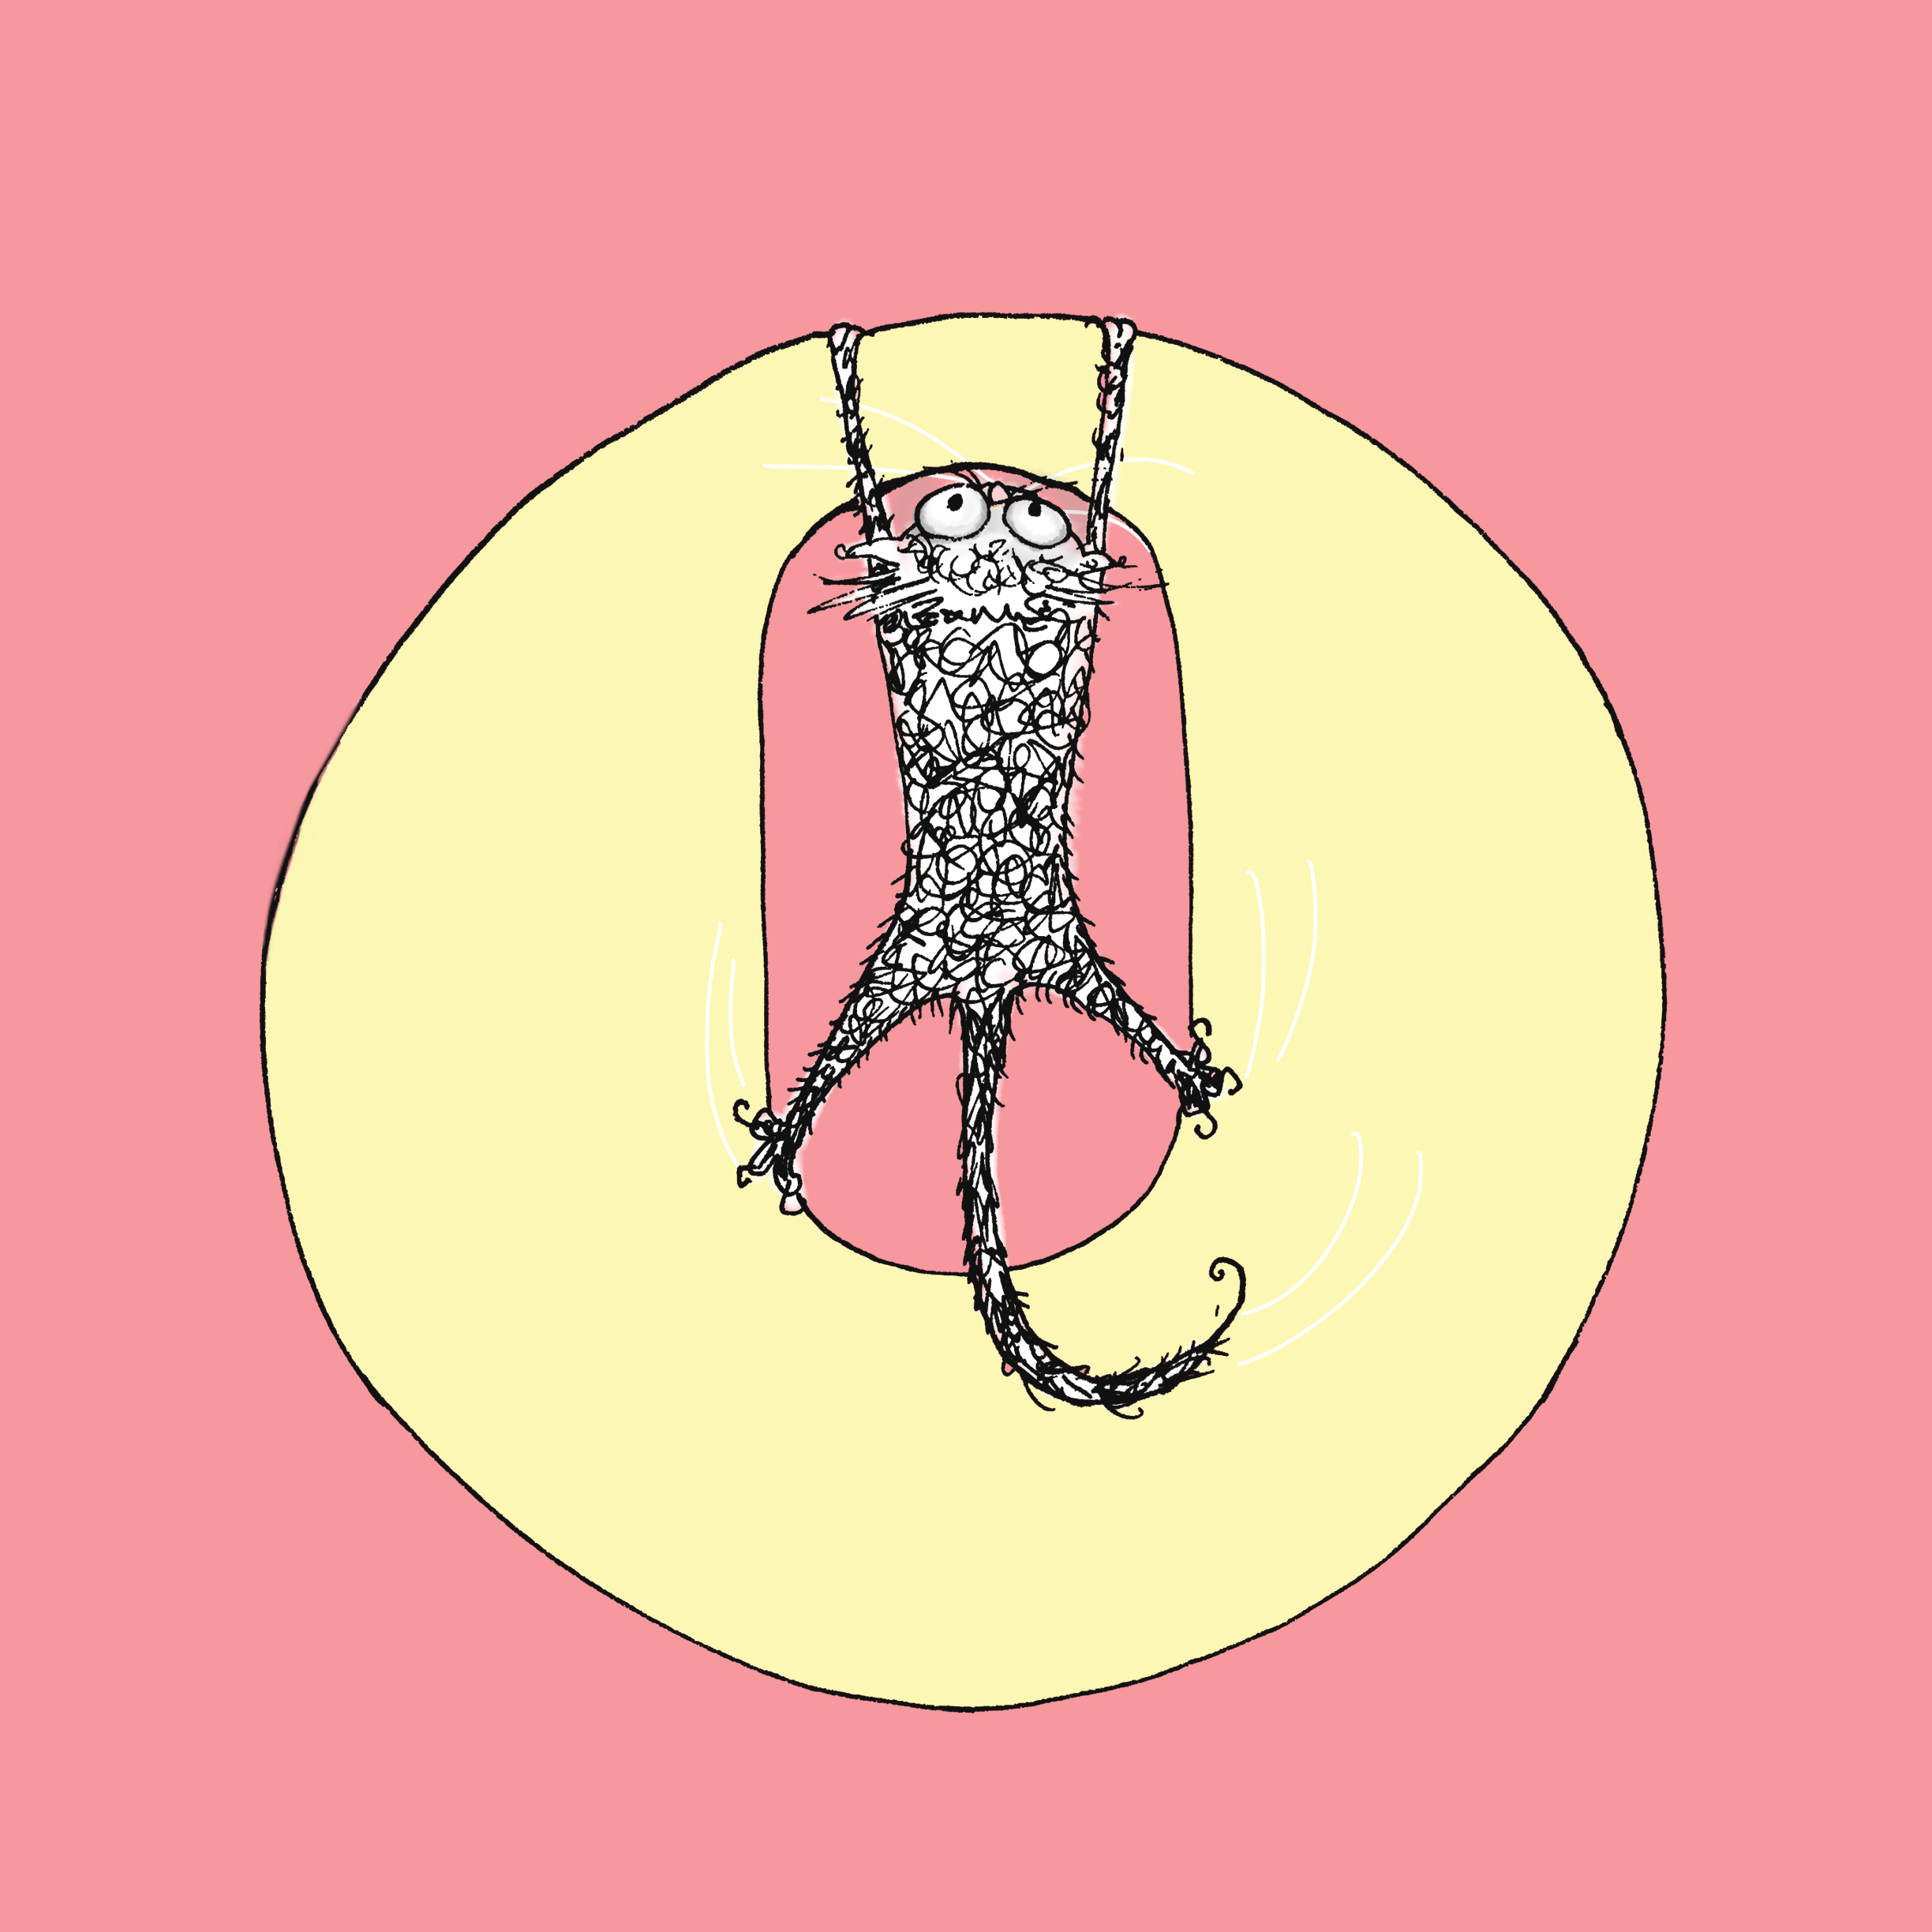 O - cat clinging on - cat drawings by natalie palmer sutton  - illustration and animation - Cat Don't Care